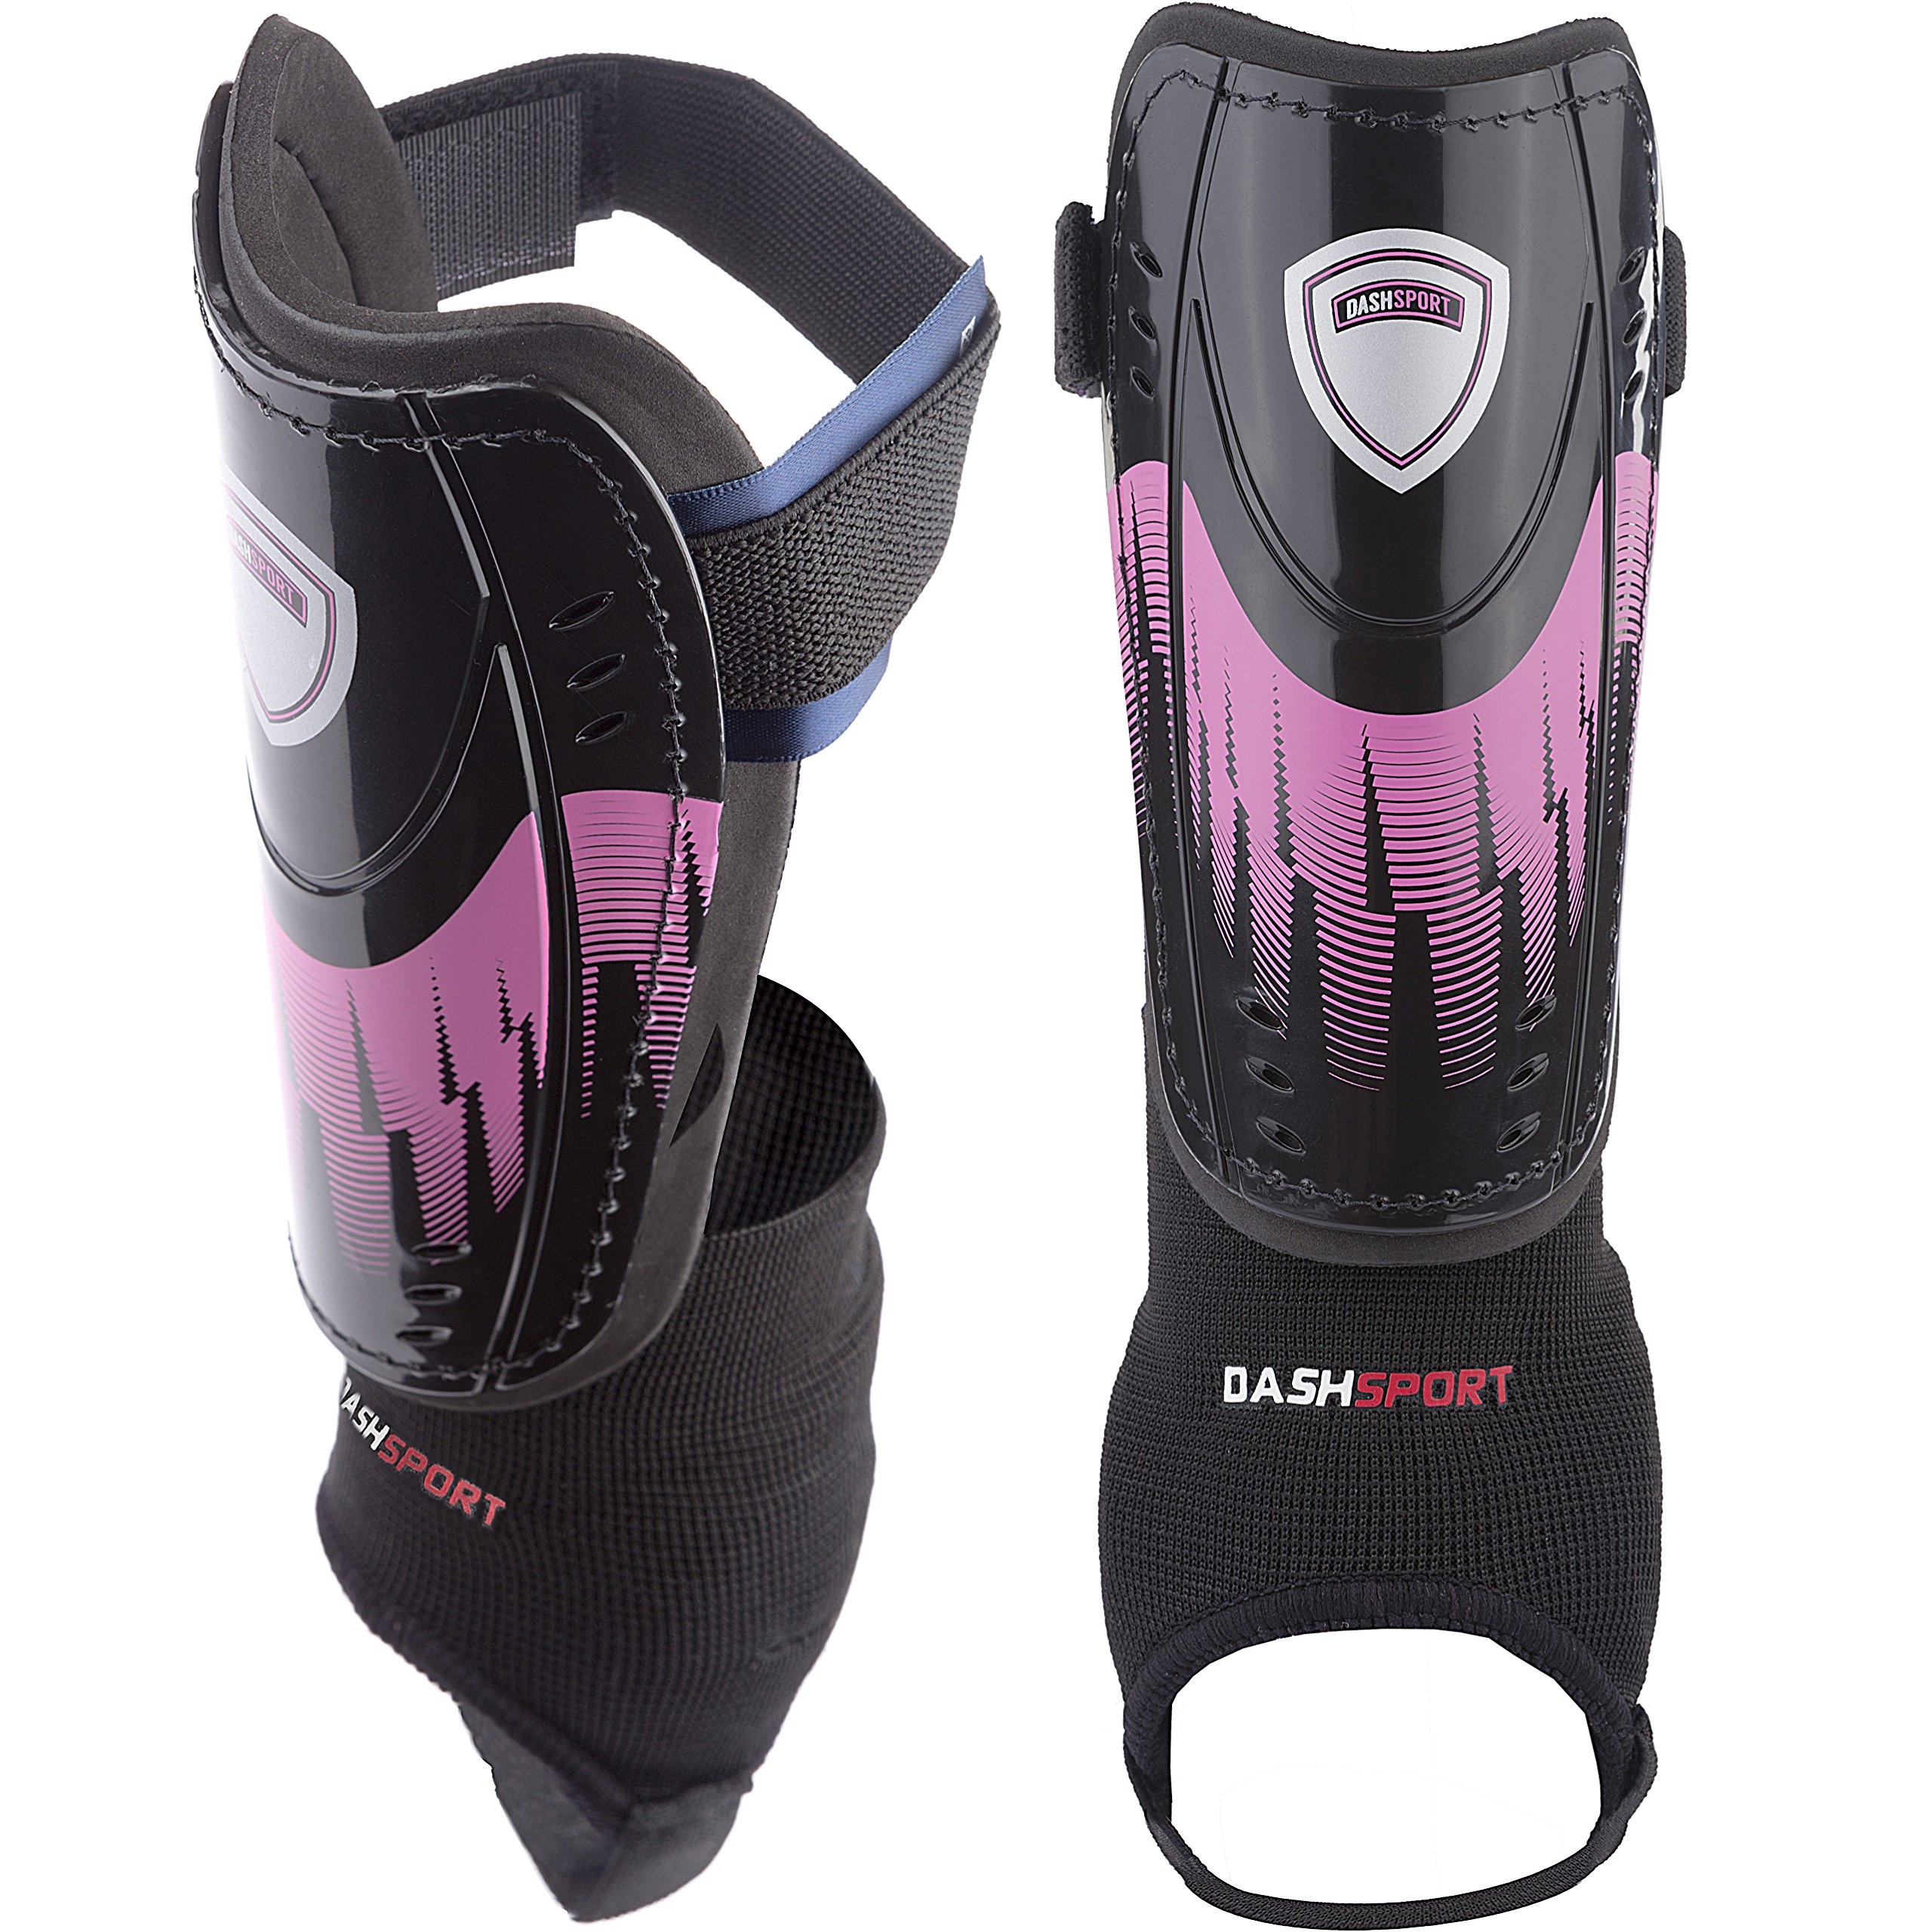 DashSport Soccer Shin Guards -Youth Sizes Best Kids Soccer Equipment with Ankle Sleeves - Great for Boys and Girls by DashSport